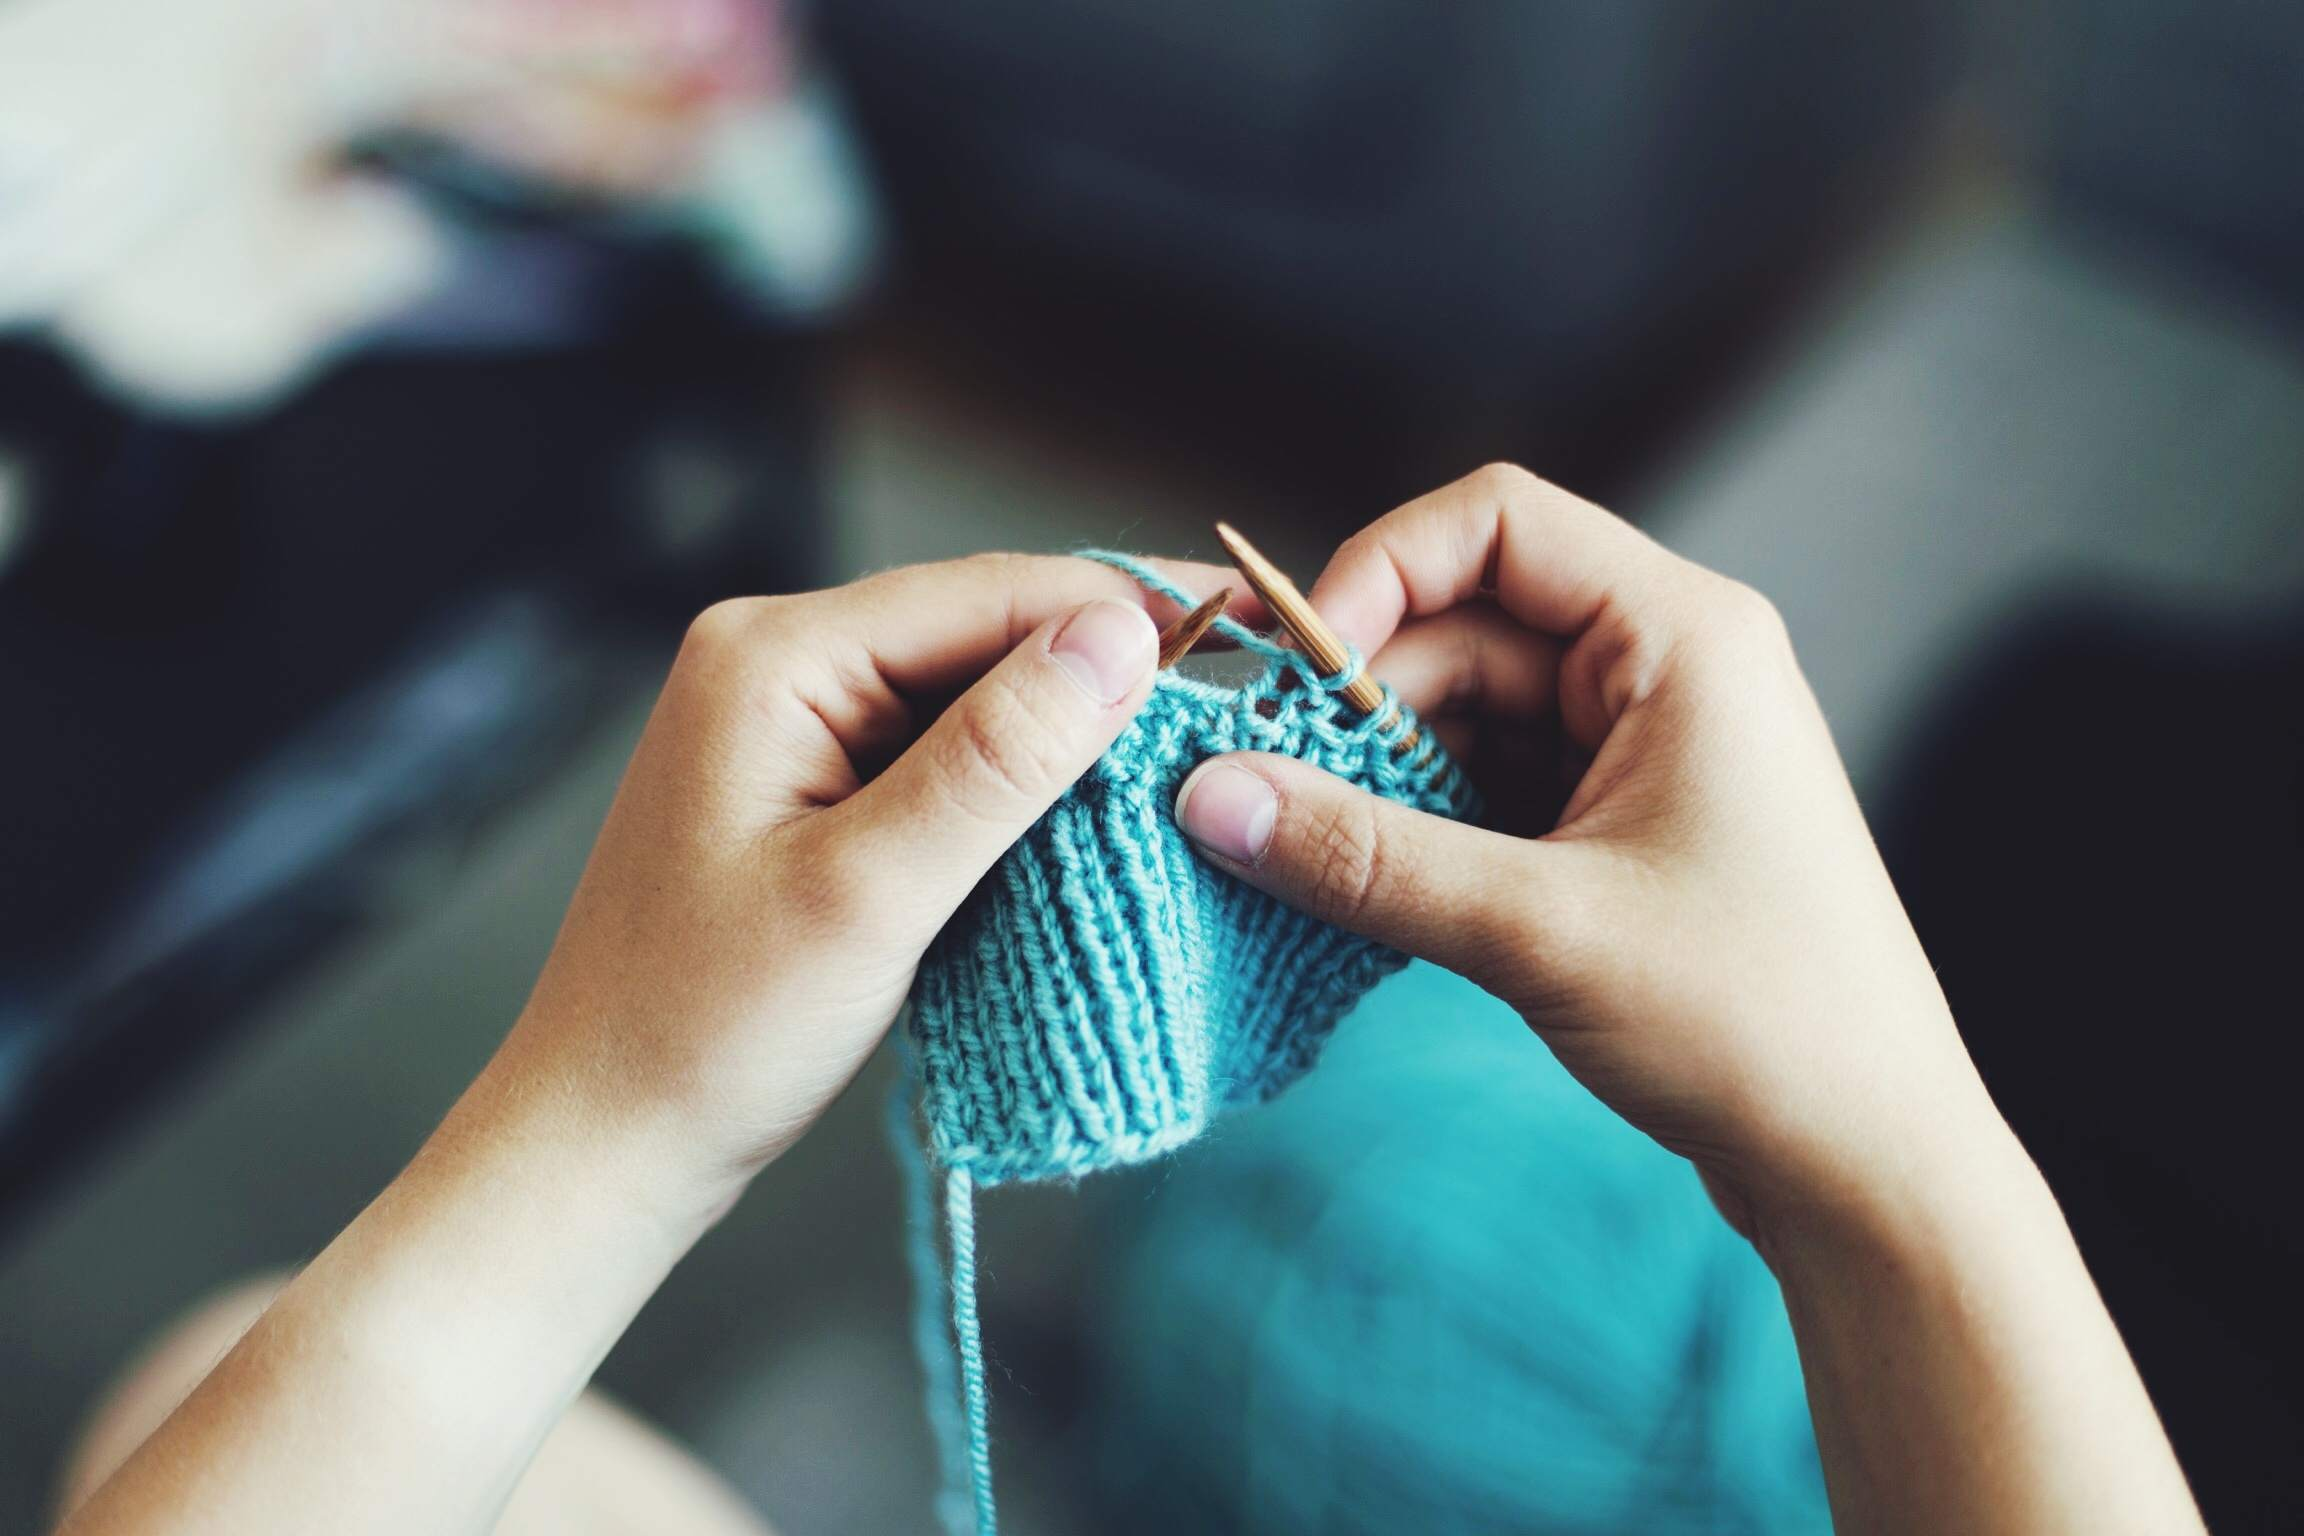 A pair of hands knitting